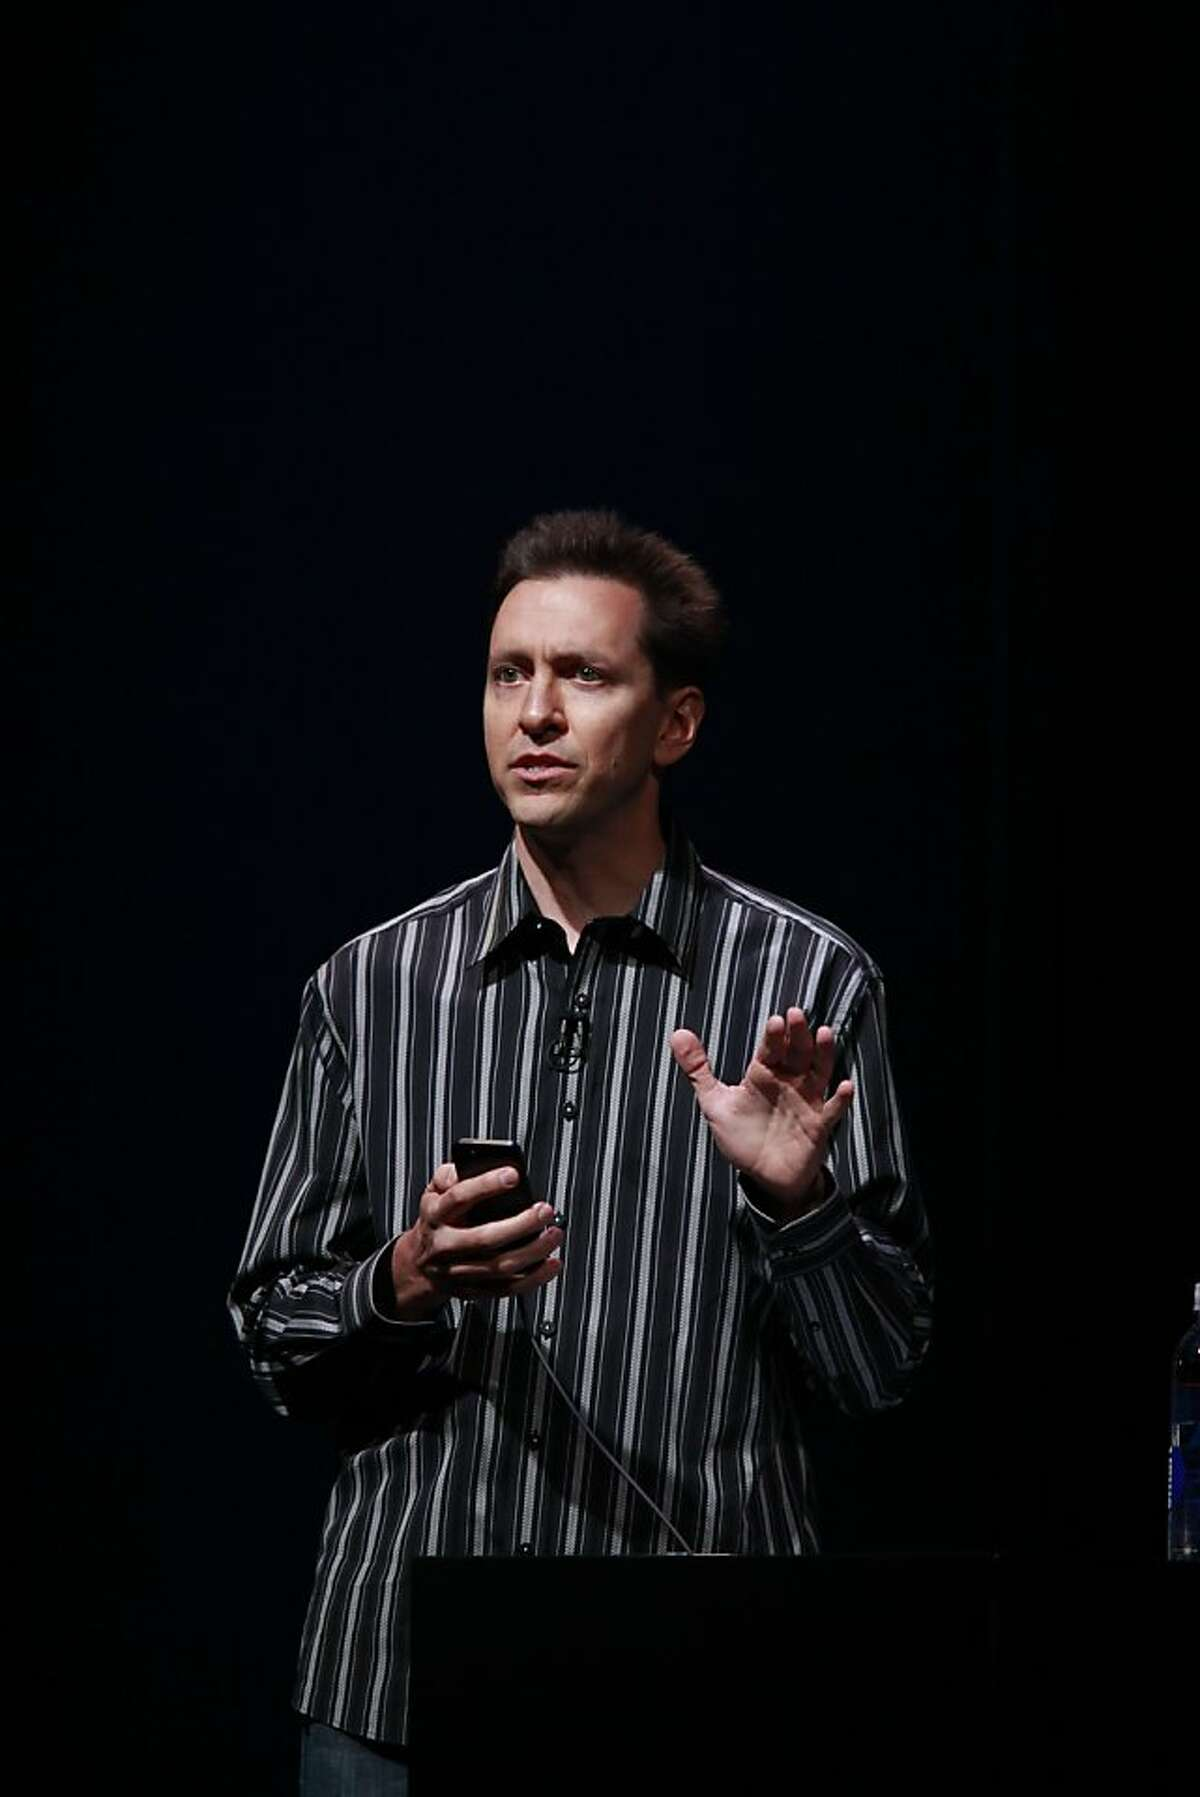 Head of Apple's iOS team, Scott Forstall introduces the iOS6 on new iPhone 5 at the Yerba Buena Center for the Arts on Wednesday Sep. 12, 2012 in San Francisco, Calif.